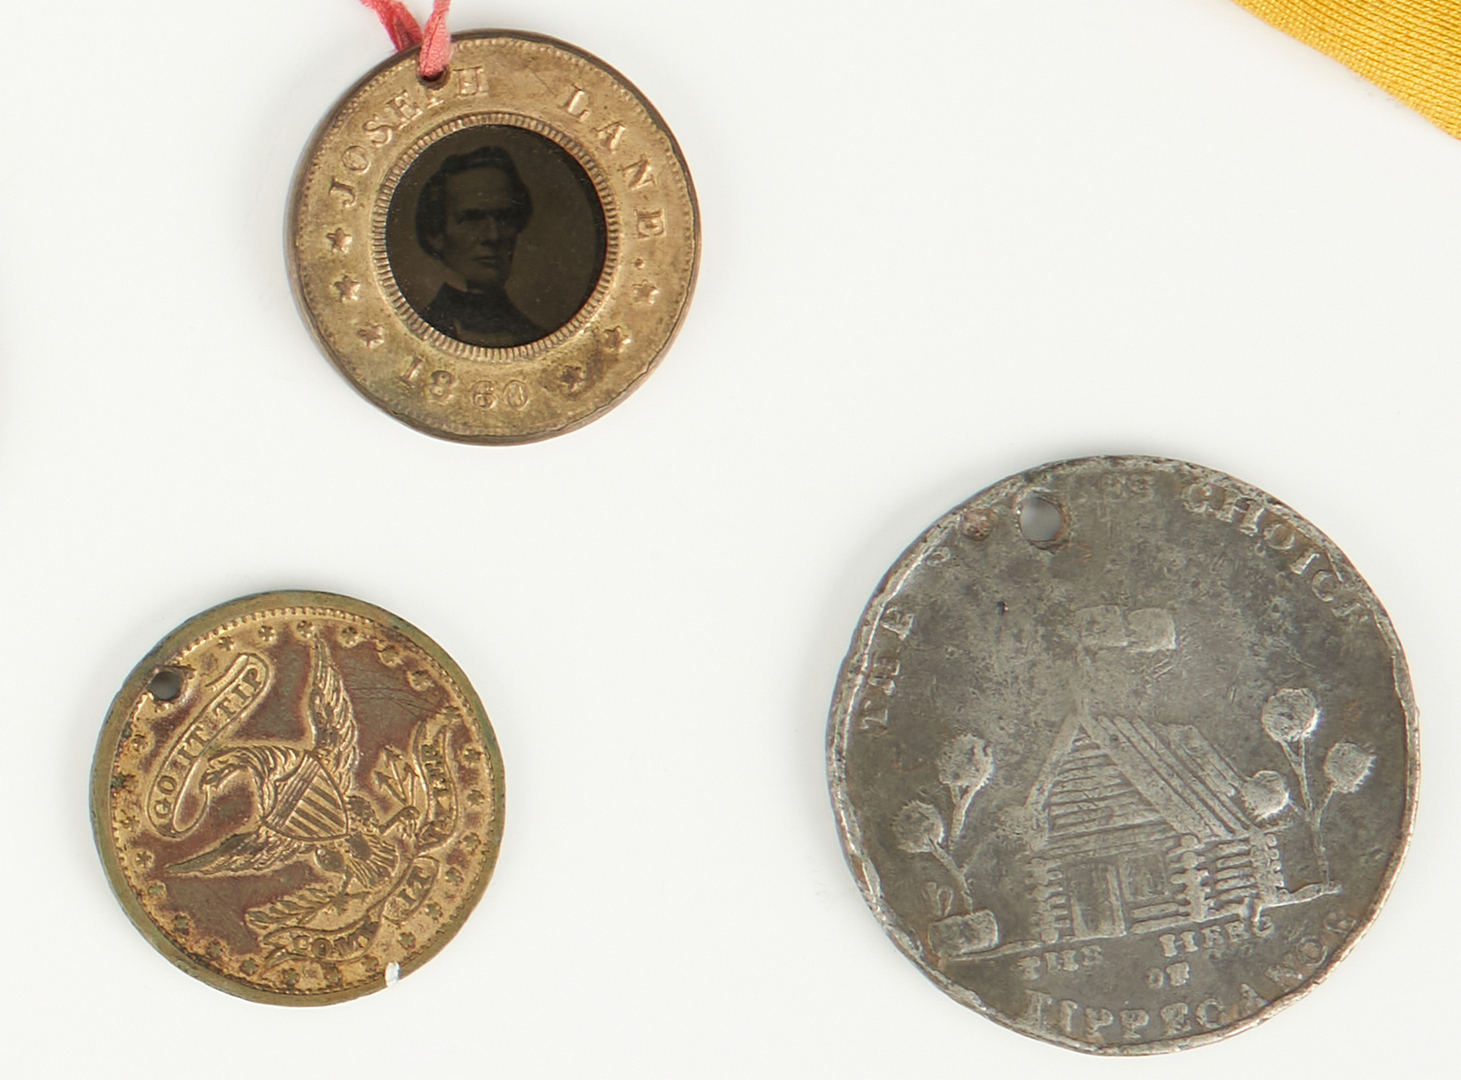 Lot 654: Group of Political Items, incl. End of Pain 1793 Token